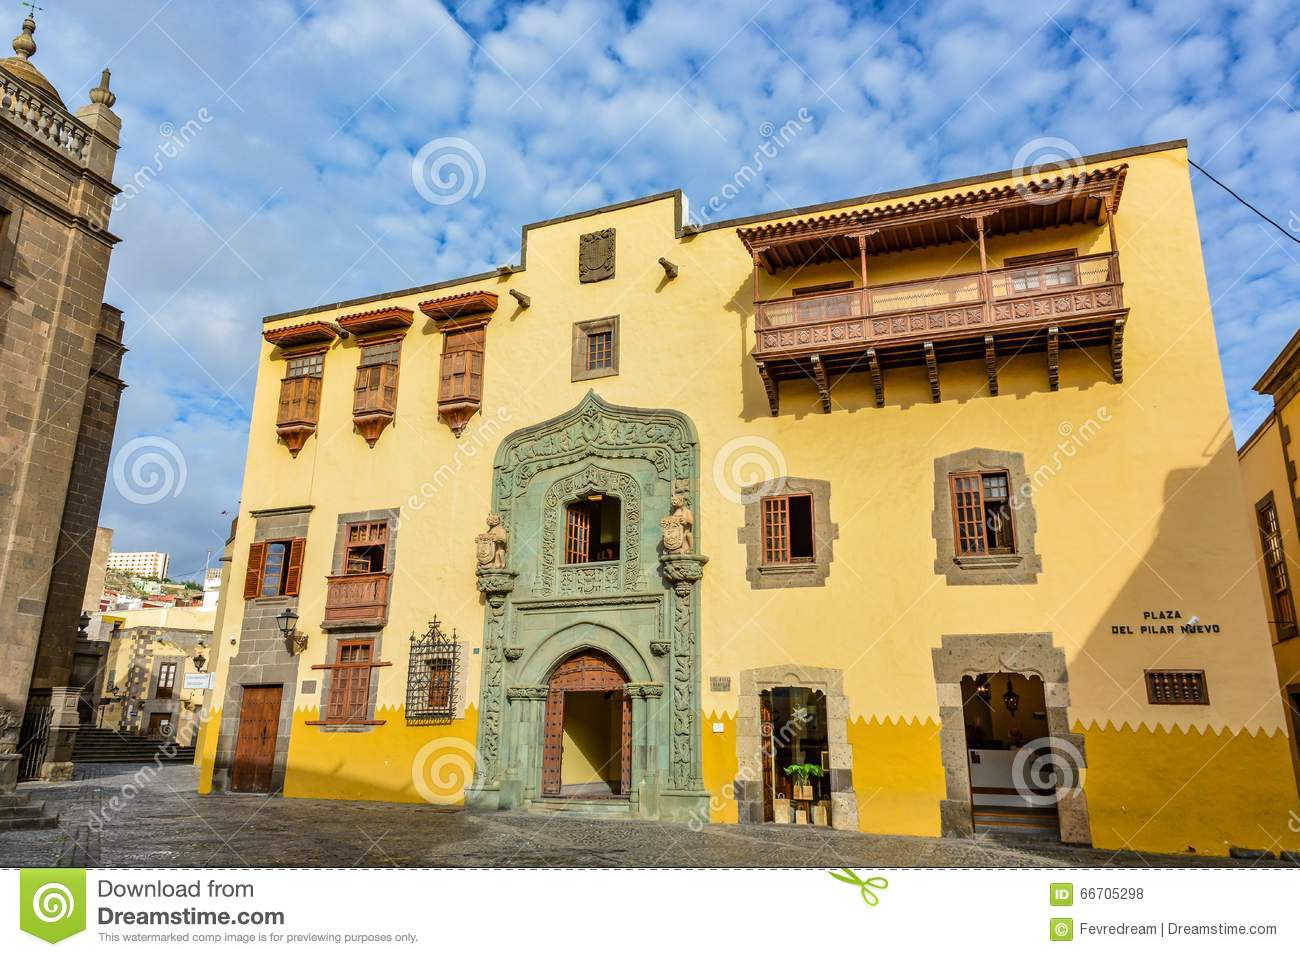 christopher columbus and las casas Celebrate bartolome de las casas, not columbus  i remember in school being  taught about christopher columbus, the visionary who thought.